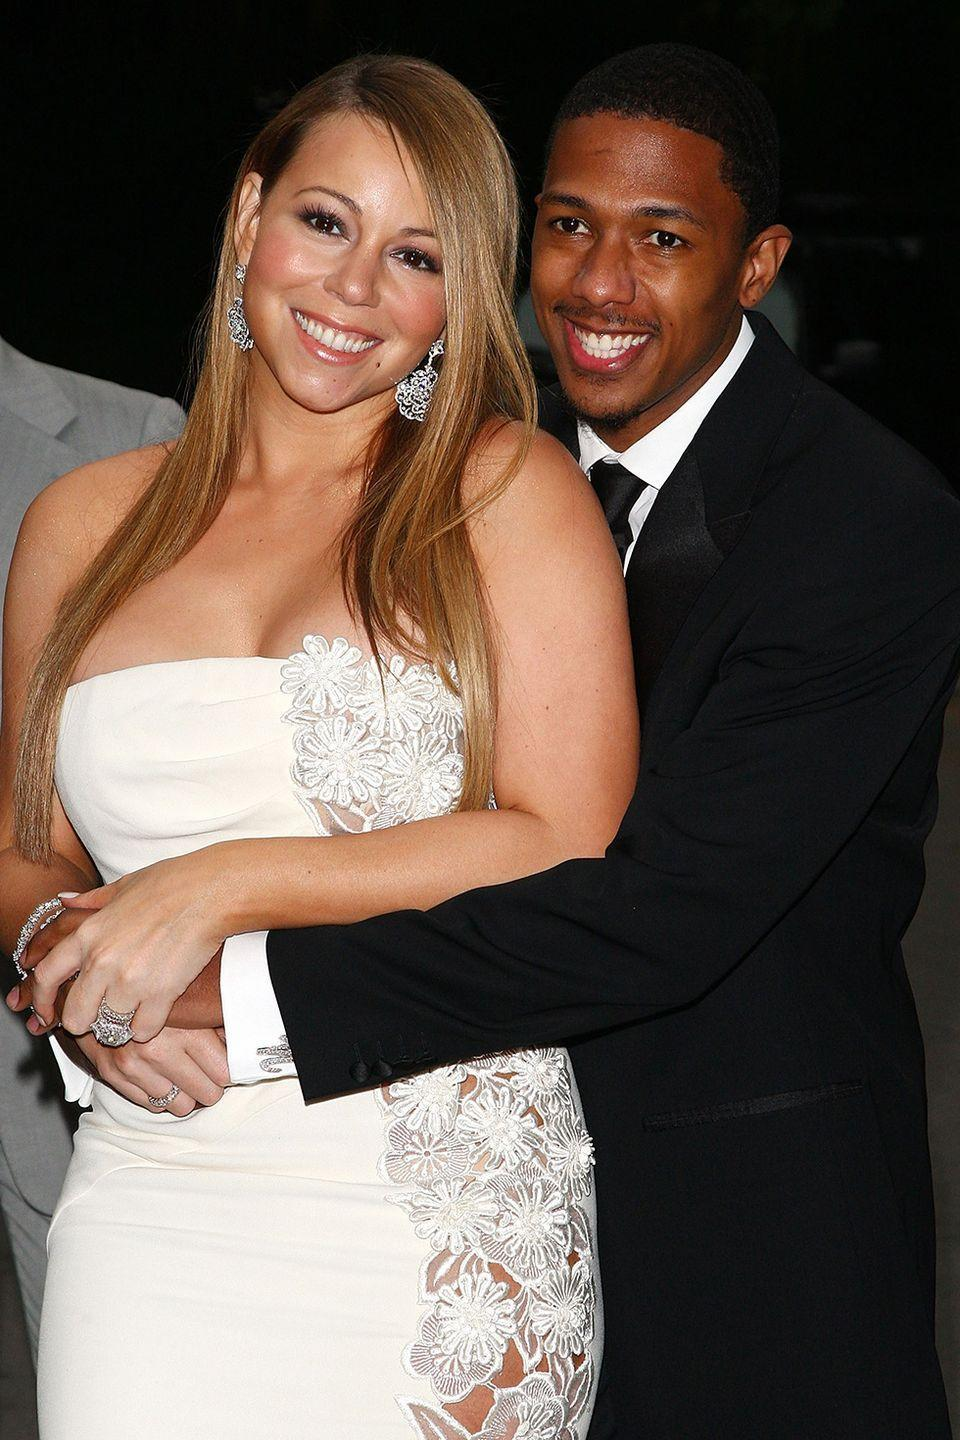 "<p>They may have known each other for a few years, but they only dated for a few weeks before marrying in the Bahamas in 2008, according to <em><a href=""https://www.eonline.com/news/585824/nick-cannon-files-for-divorce-from-mariah-carey-after-6-years-of-marriage-report"" rel=""nofollow noopener"" target=""_blank"" data-ylk=""slk:E! News"" class=""link rapid-noclick-resp"">E! News</a></em>. As far as celeb marriages go, theirs lasted six years (a good run!), but they divorced in 2014.</p>"